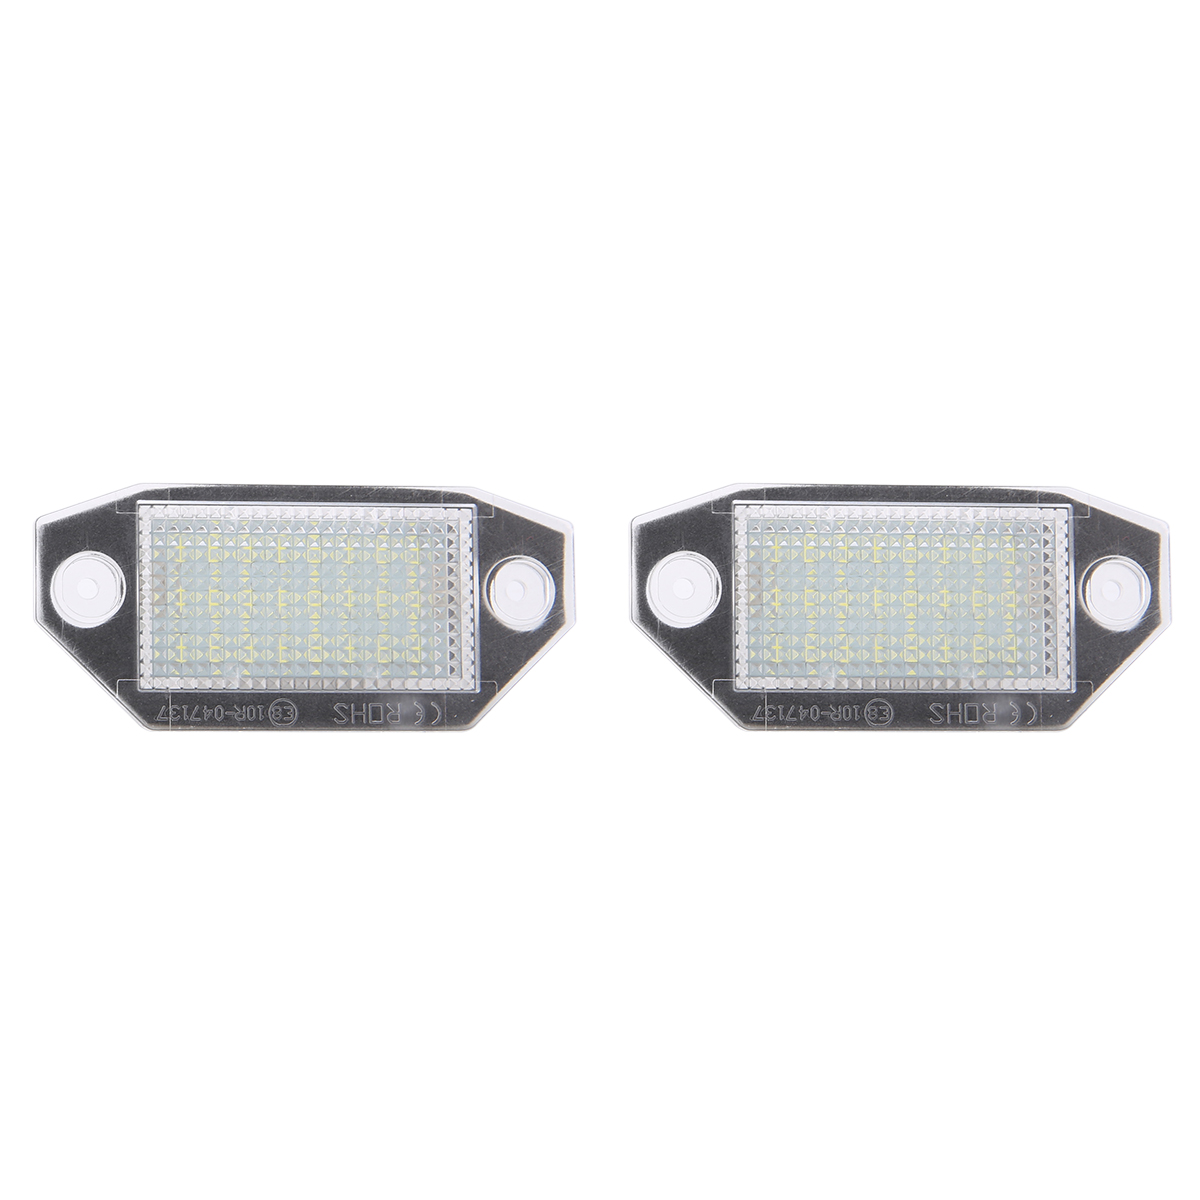 2pcs set 12V 24LED White Number License Plate Light Built in Canbus Controller Lamp Fit For Ford Mondeo MK3 2000 2007 in Signal Lamp from Automobiles Motorcycles